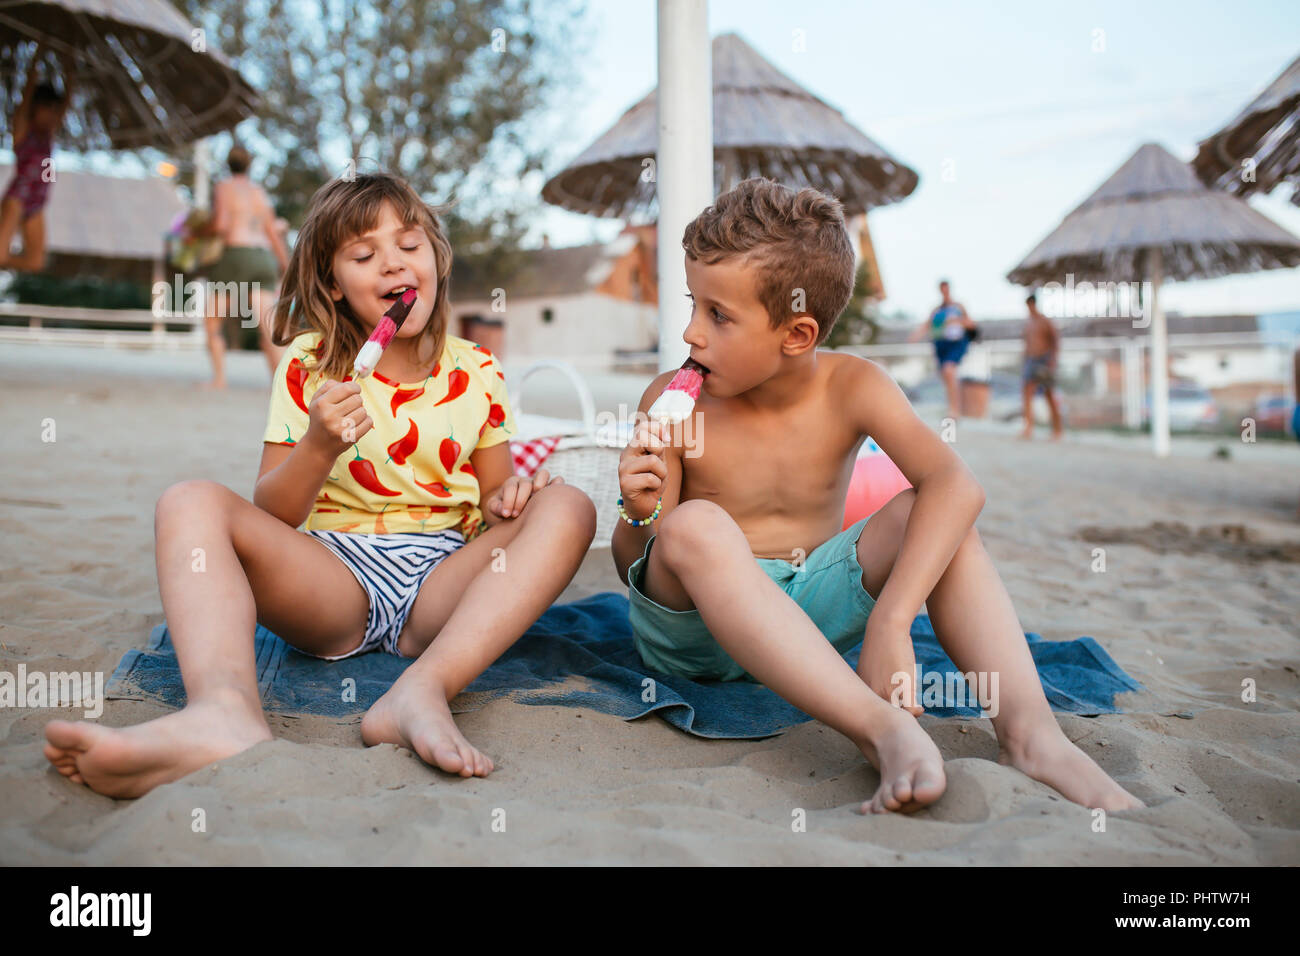 Happy positive children sitting on the sandy beach and eating ice cream. People, children, friends and friendship concept - Stock Image